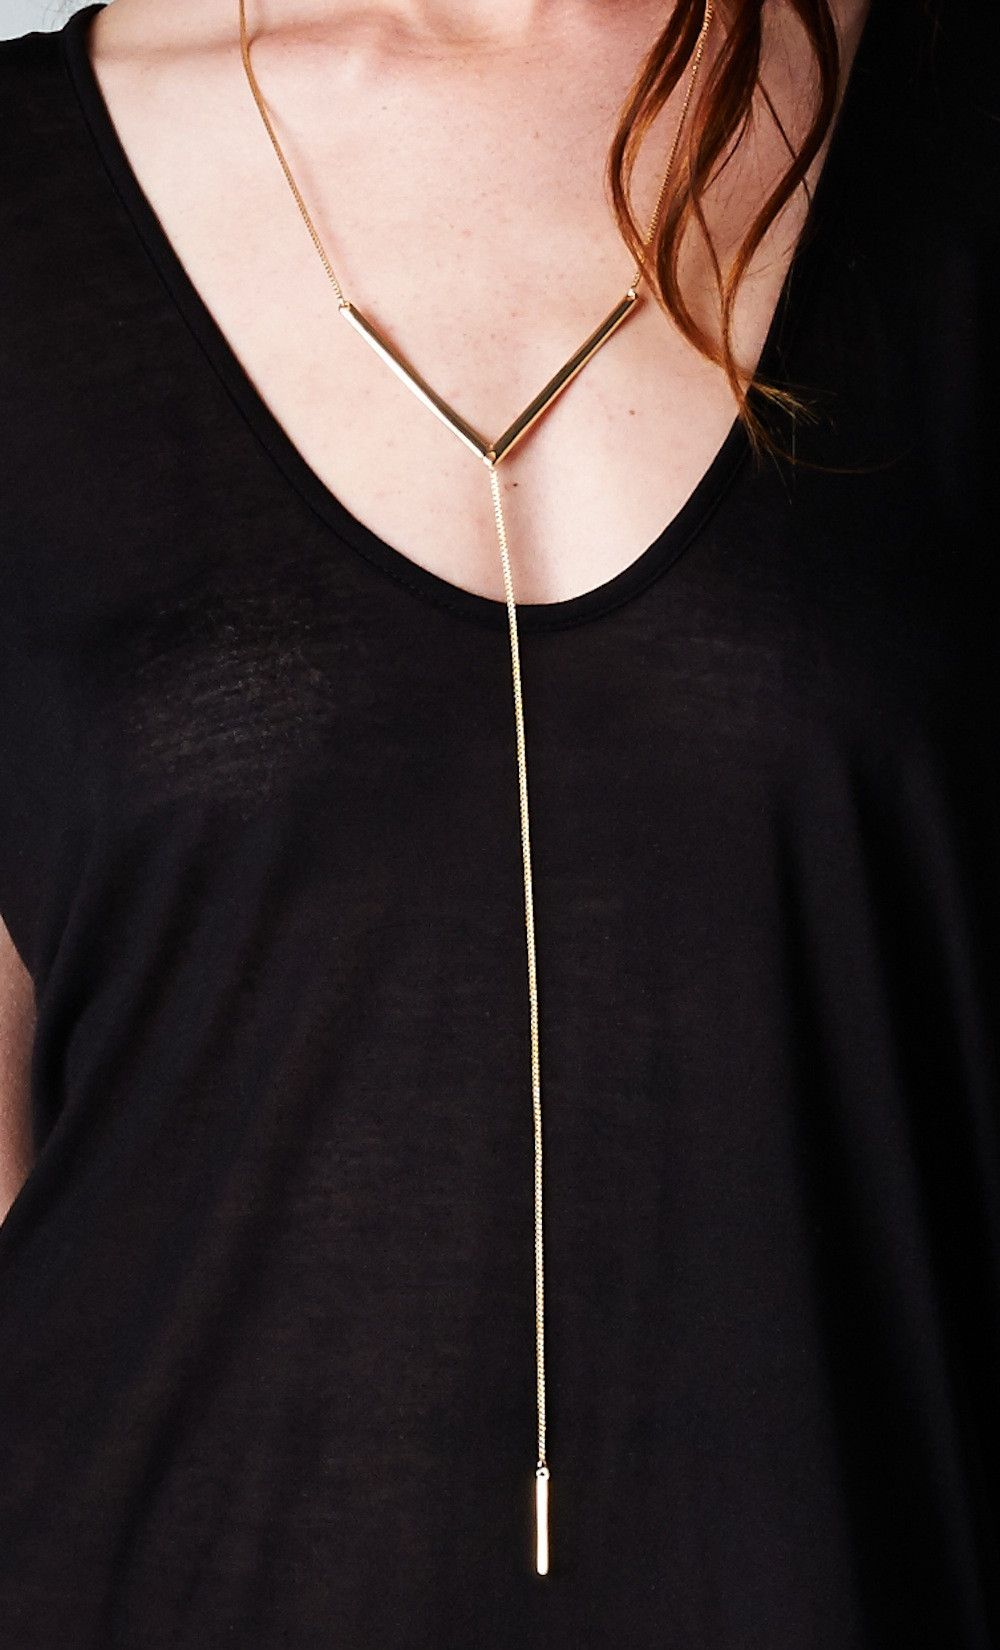 #vpendant #lariat #bar #necklace WWW.SHOPPUBLIK.COM #shoppublik #publik #womens #fashion #clothes #style #accessories #jewelry #rings #bracelets #earrings #statement #necklaces #gold #silver #chic #cute #hot #trendy #sexy #swag #fashionista #fashionfeen #fallfashion #holidays #fashionforward #fashiontrends #outfitinspiration #streetstyle #celebstyle #ootd #whatsnew #newarrivals #armpartyswag #womenswear